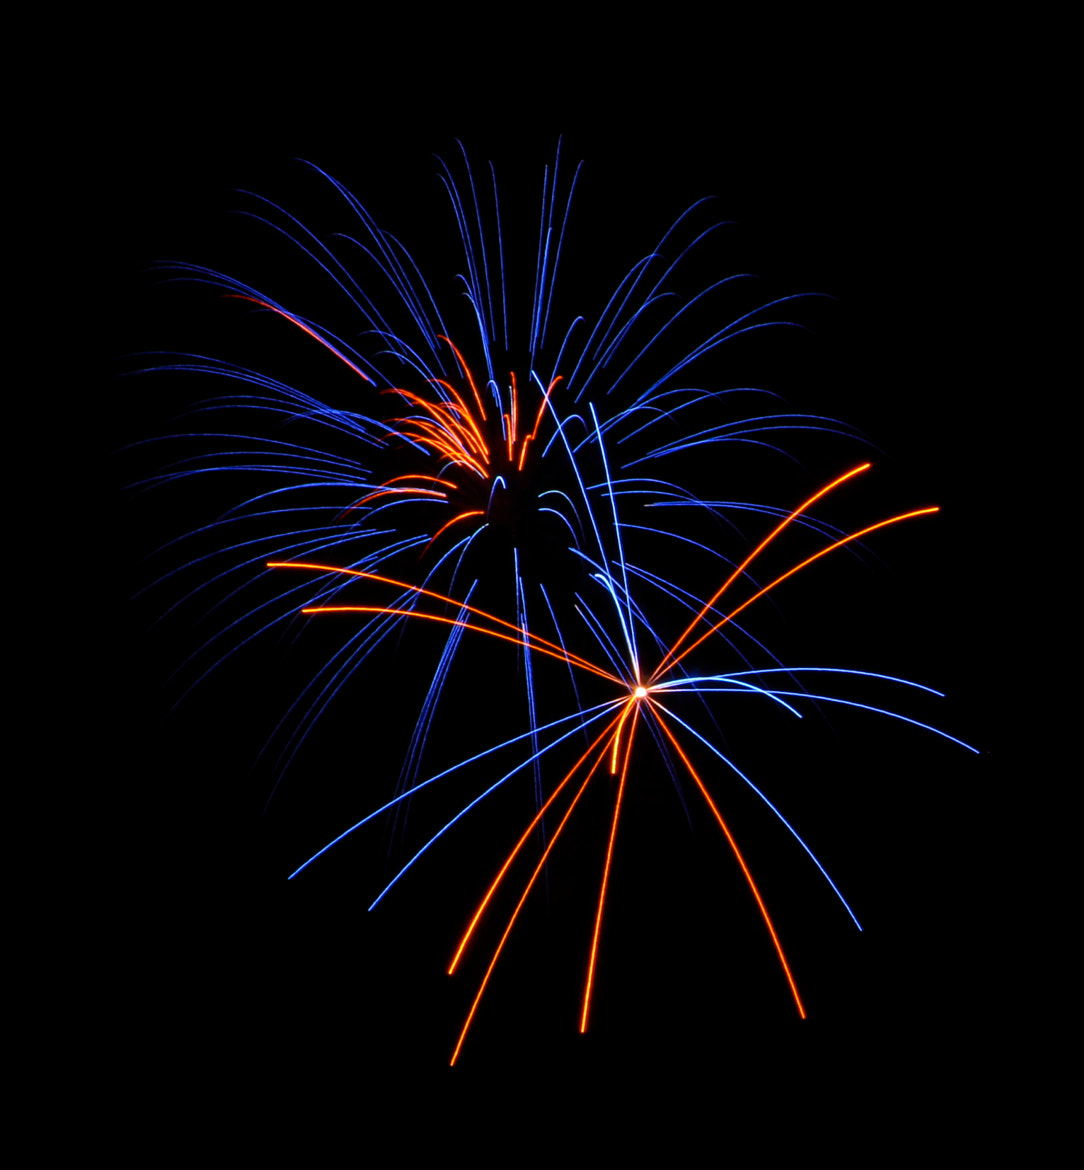 Photograph Fireworks 2 by Paul Marto on 500px